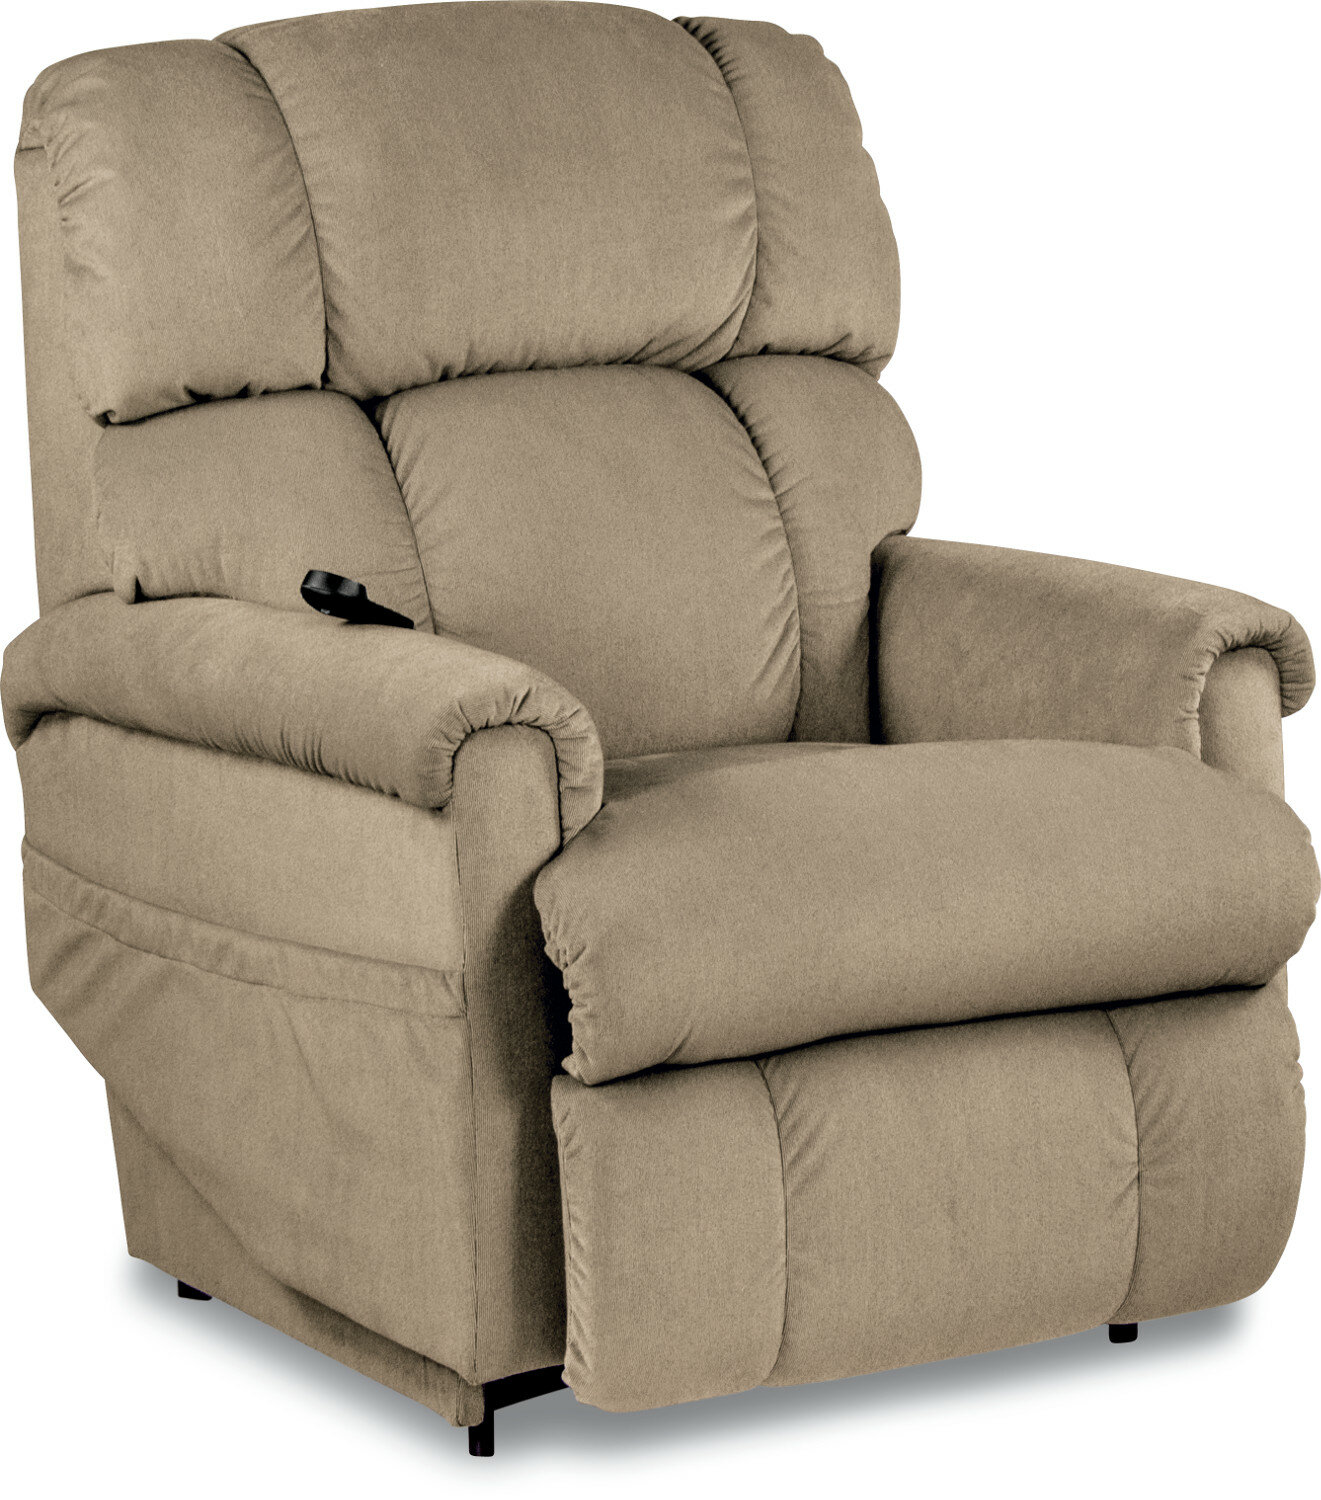 living mocha furniture lift leon hover s recliners recliner item chair zoom to room power product bradey